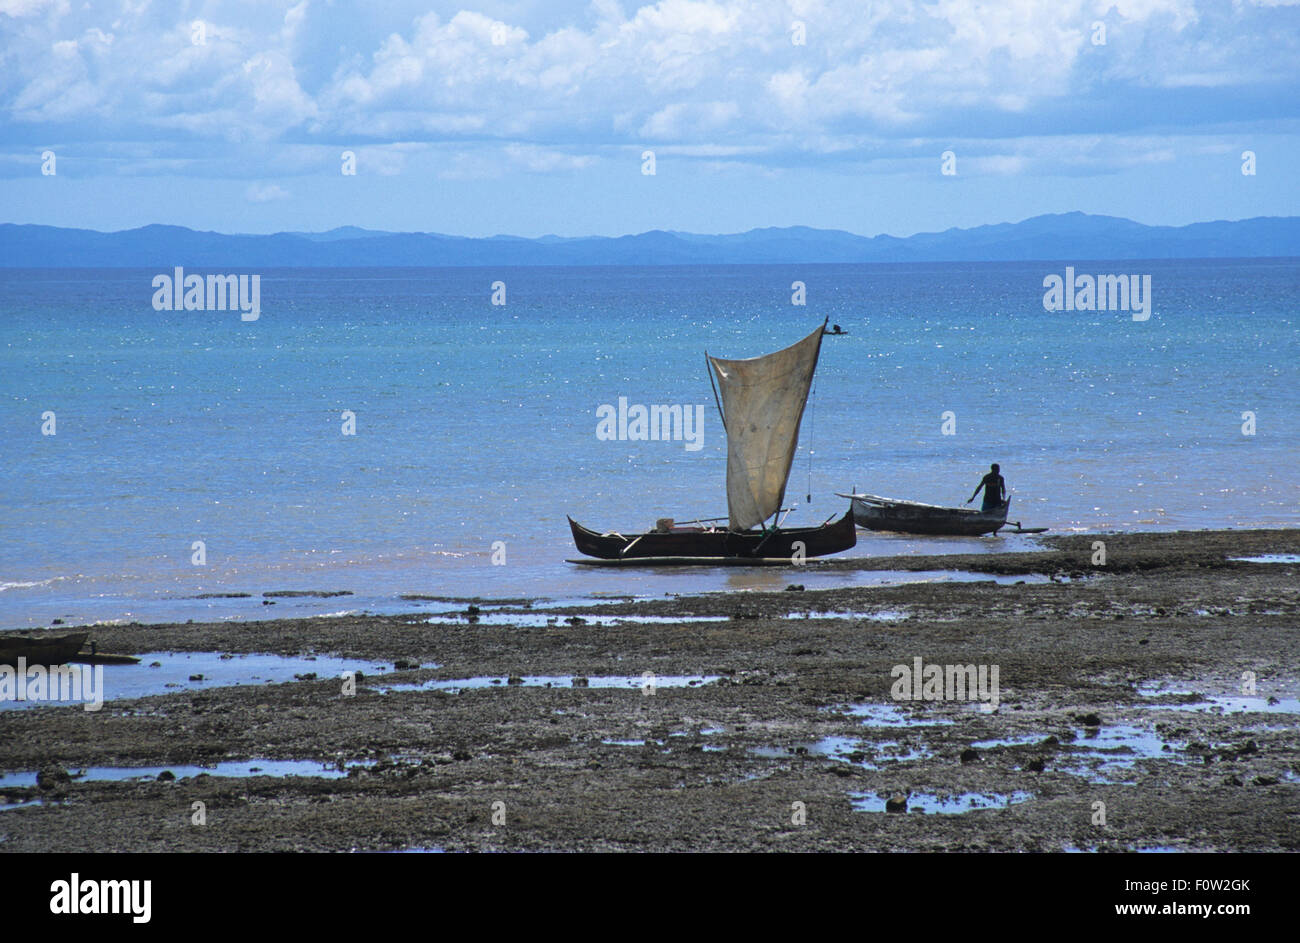 Local sailing boat at Maradokana, Hellville, Nosy Be, Madagascar, Indian Ocean - Stock Image